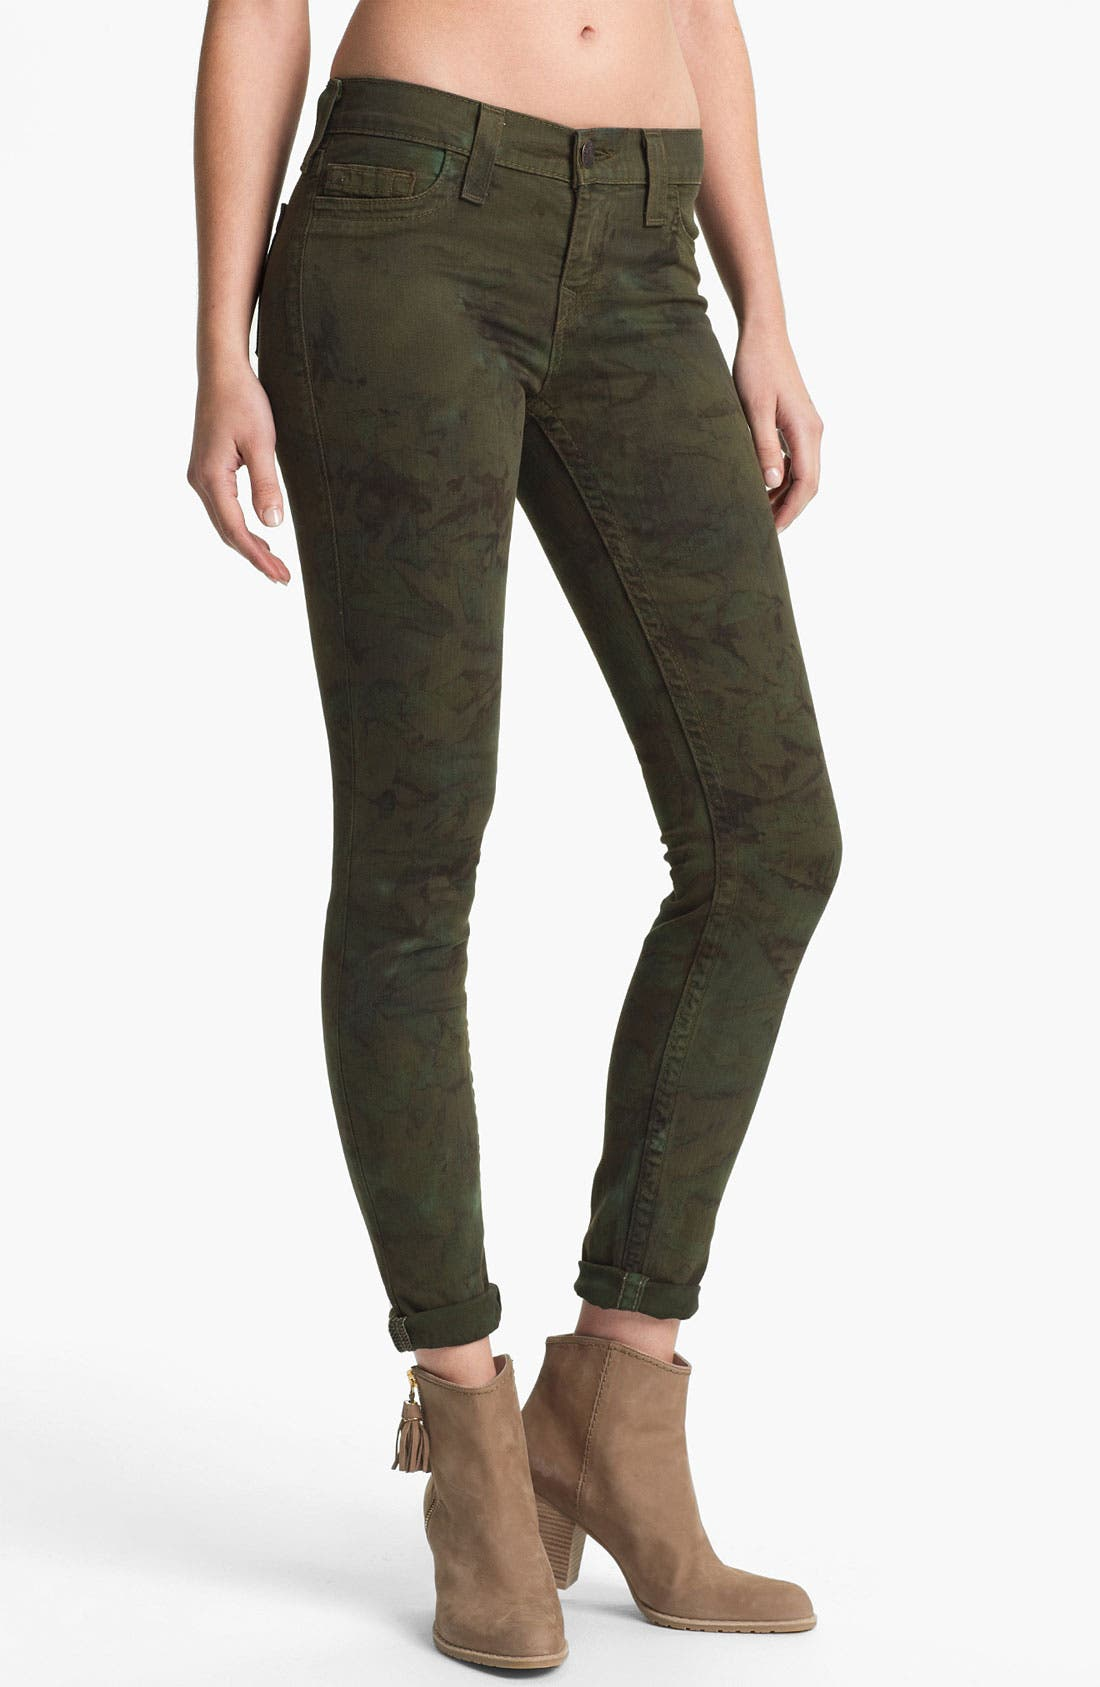 Main Image - True Religion Brand Jeans 'Halle' Skinny Stretch Jeans (Military)